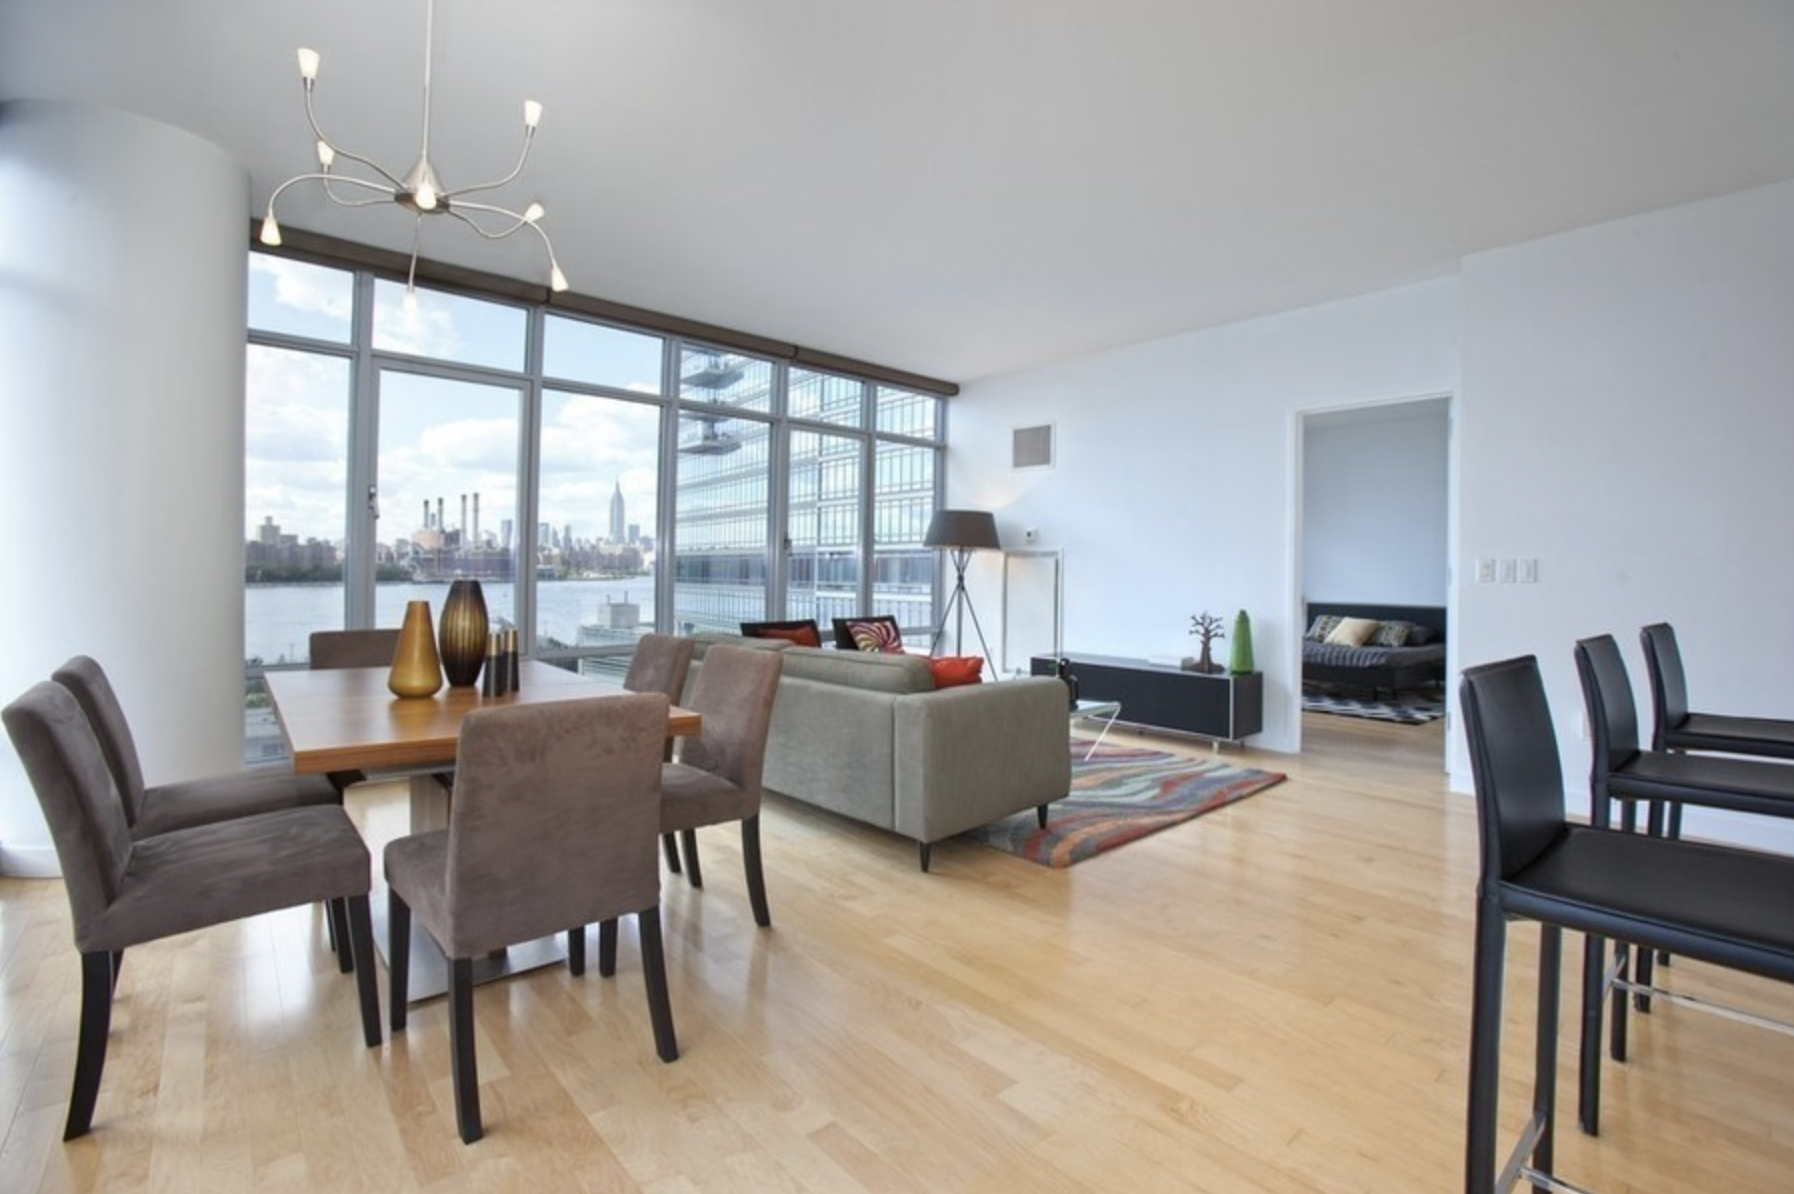 1 Northside Piers, #5D - Williamsburg | Brooklyn    2 Bedroom // 2 Bath Days on Market — 15 Sold Date: November 2012 Sold Price:    $950,000